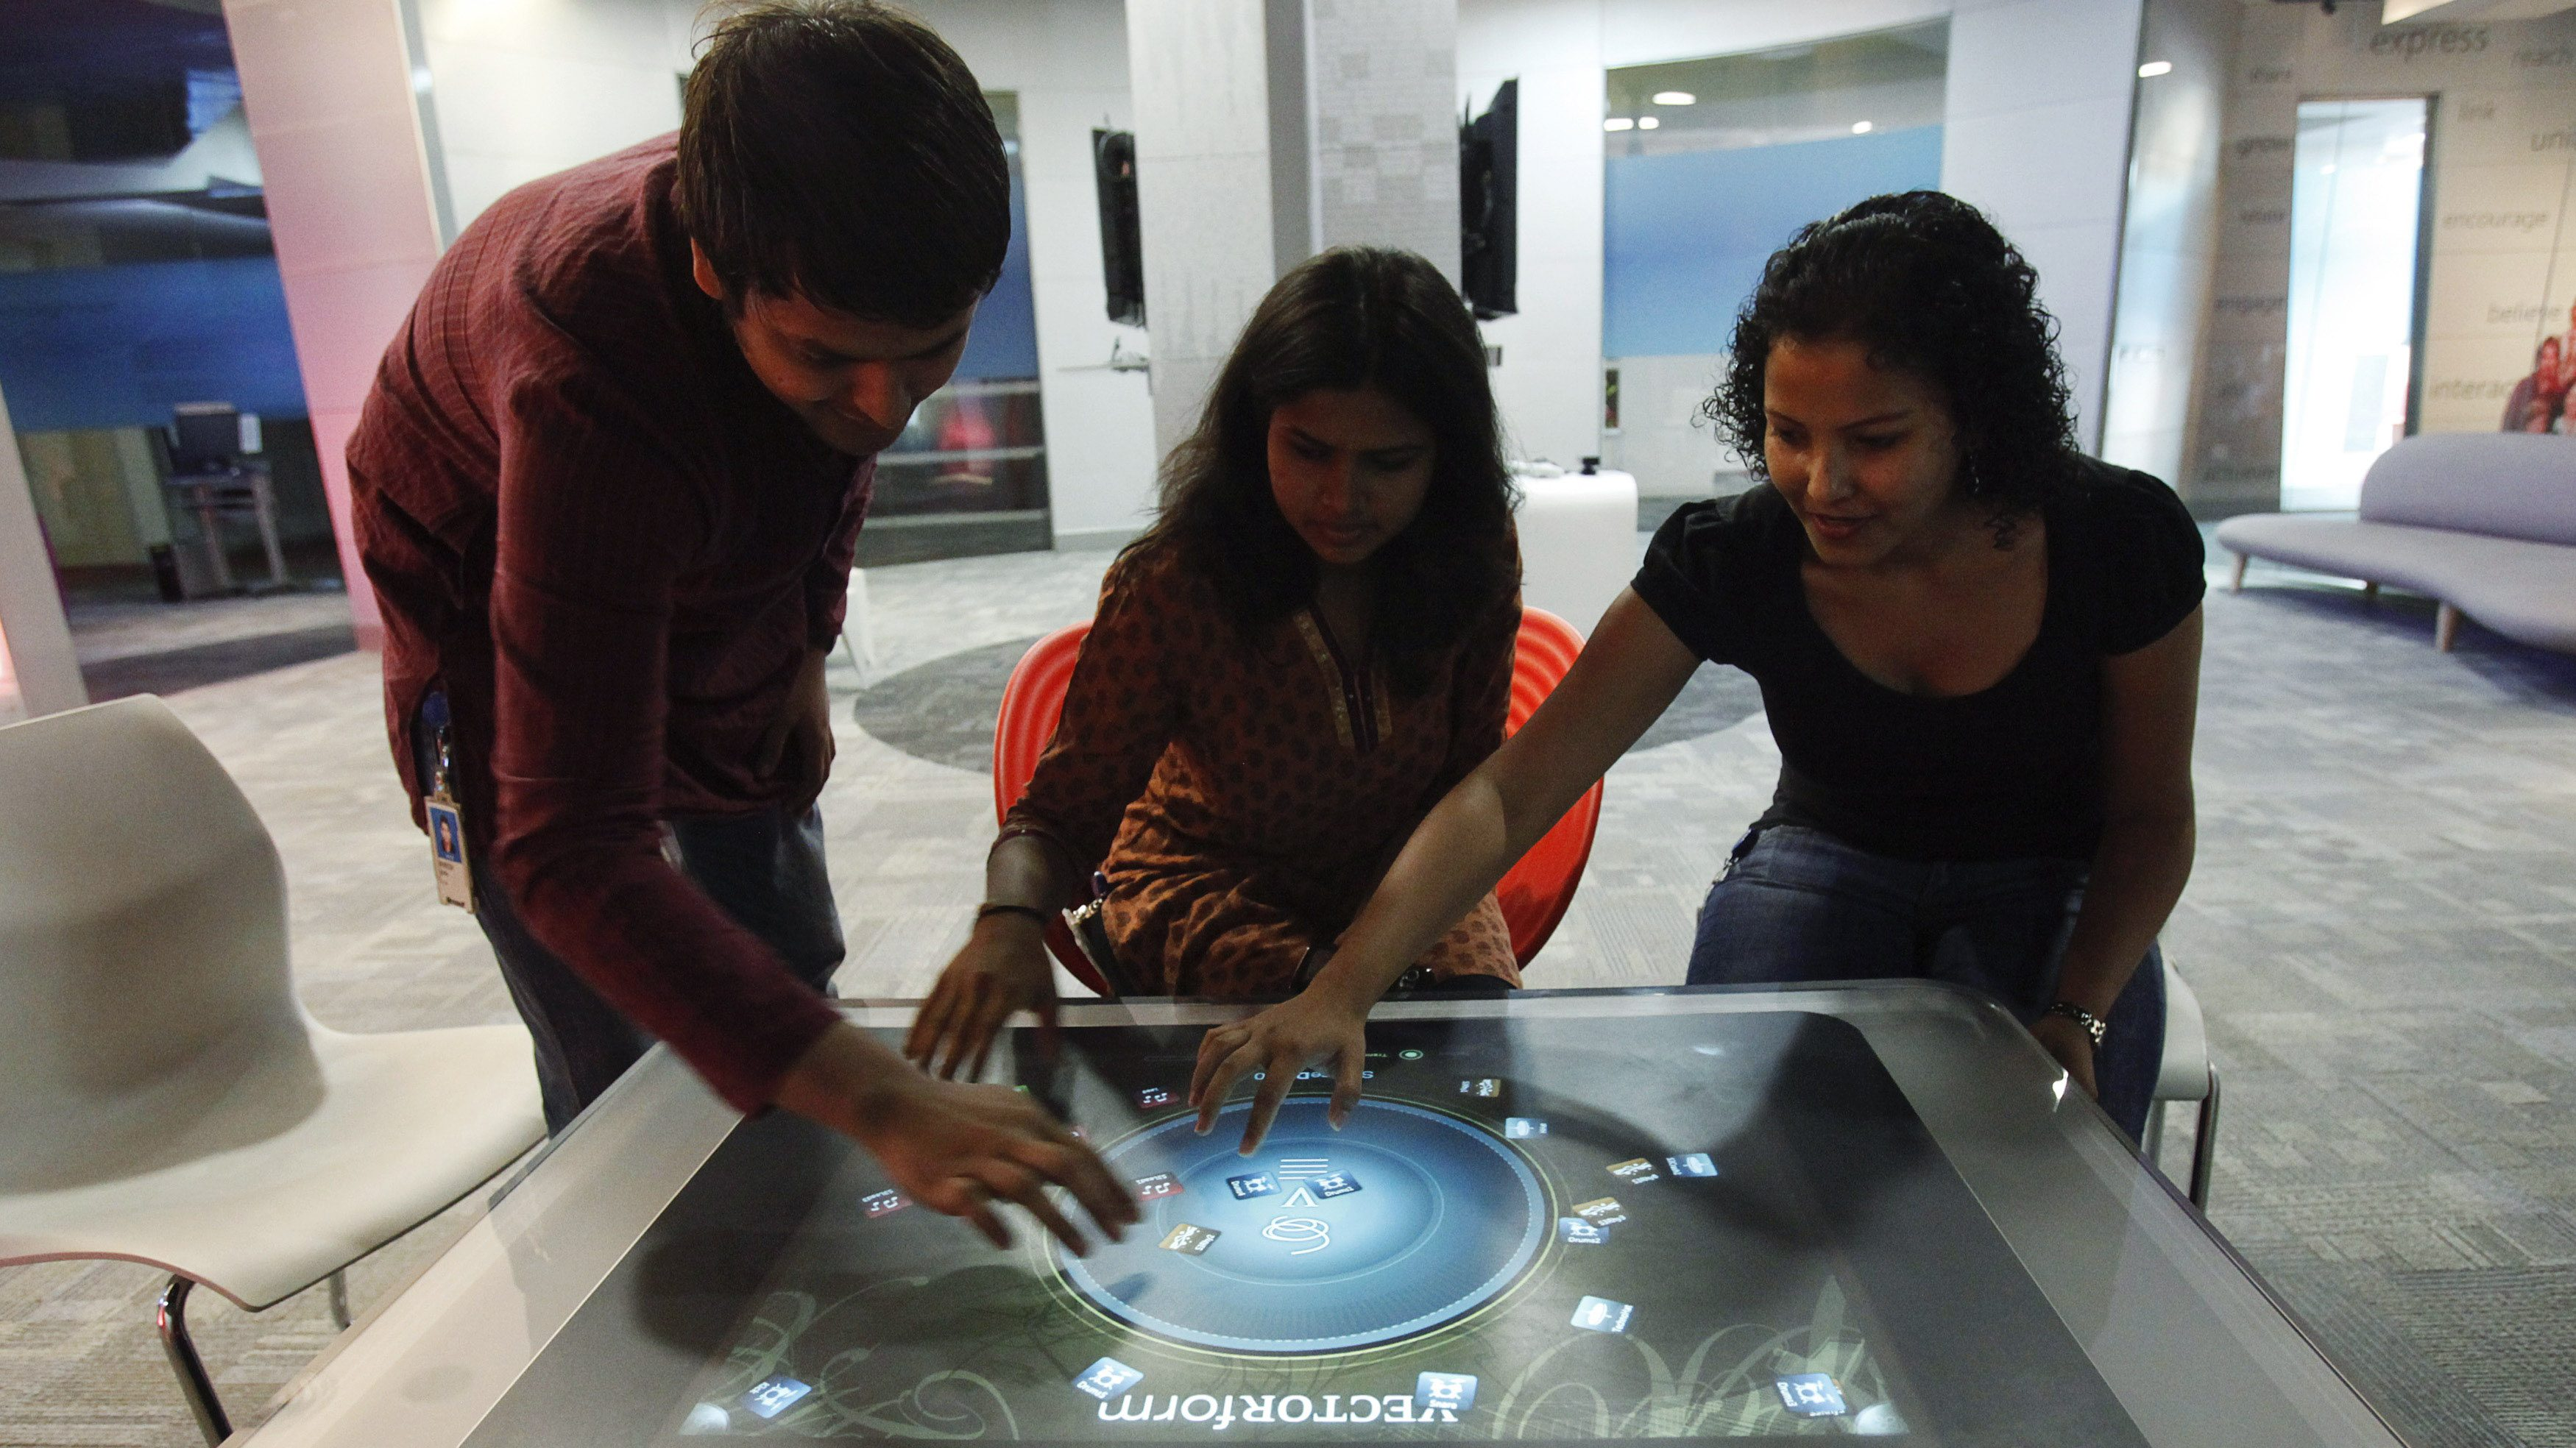 Employees demonstrate the use of the newly-designed prototype of a touch-sensitive table at Microsoft India's Development Center in the Gachibowli IT district in Hyderabad